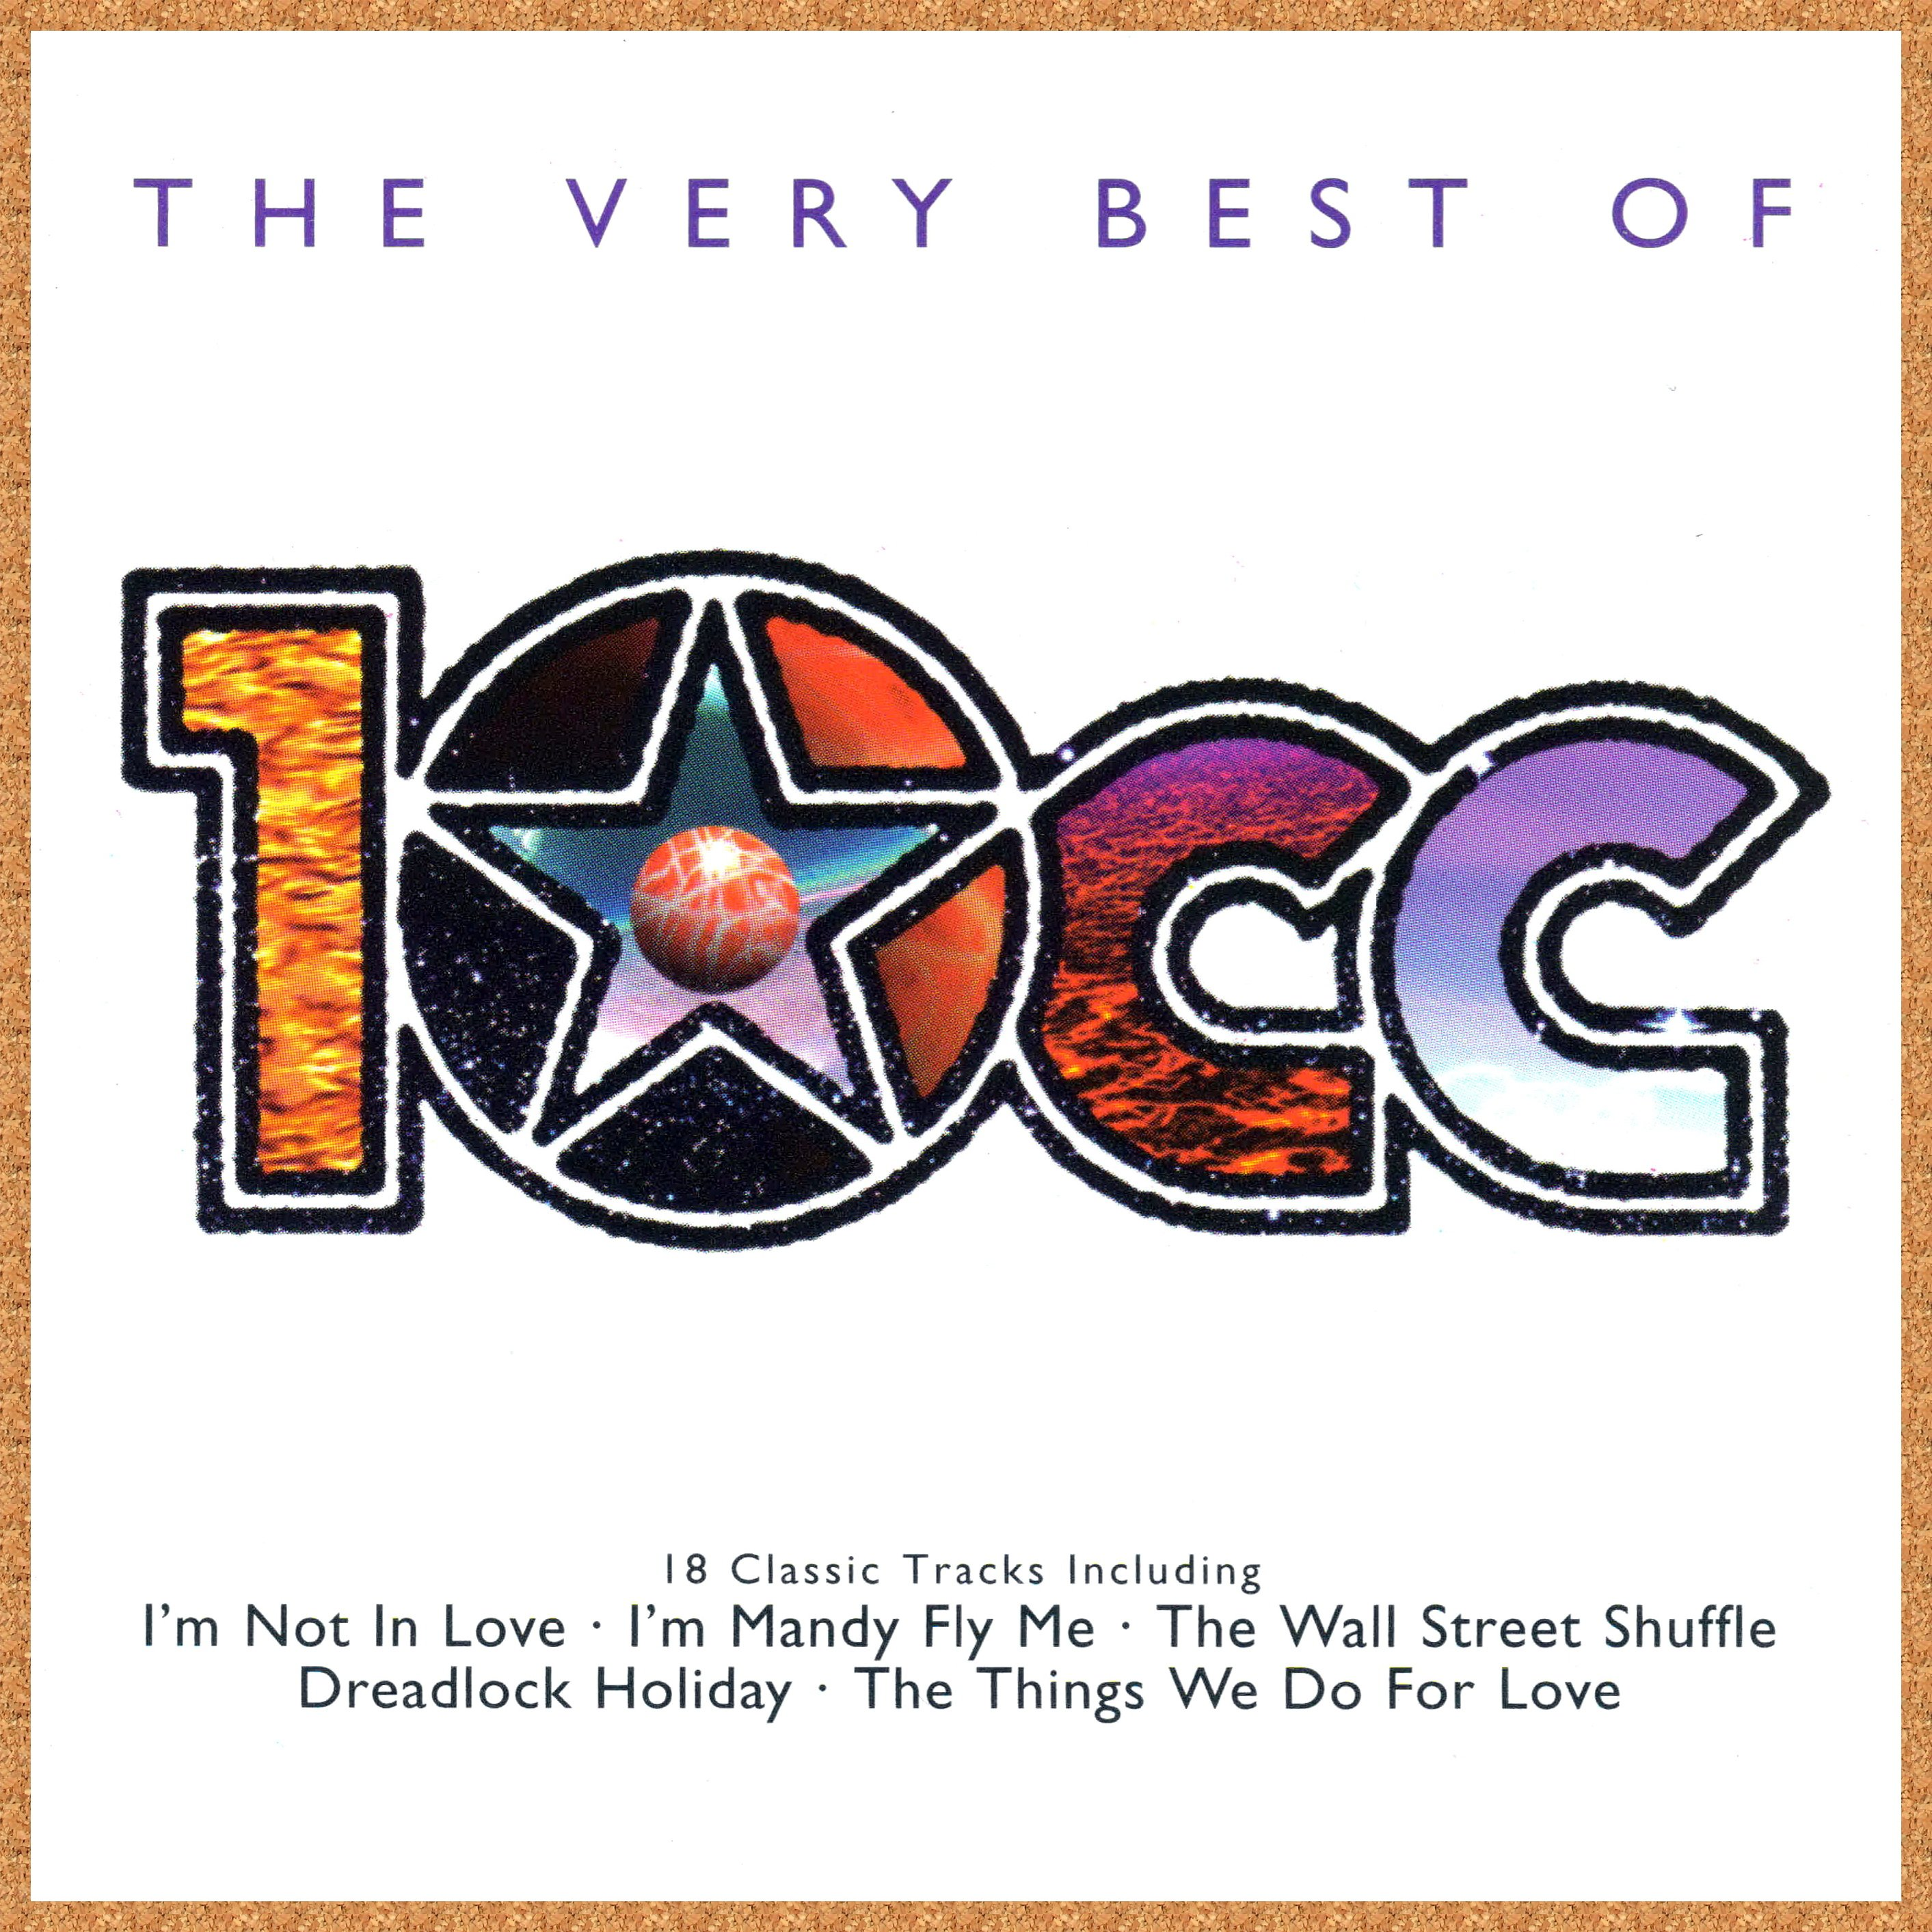 The Very Best of 10cc - 10cc